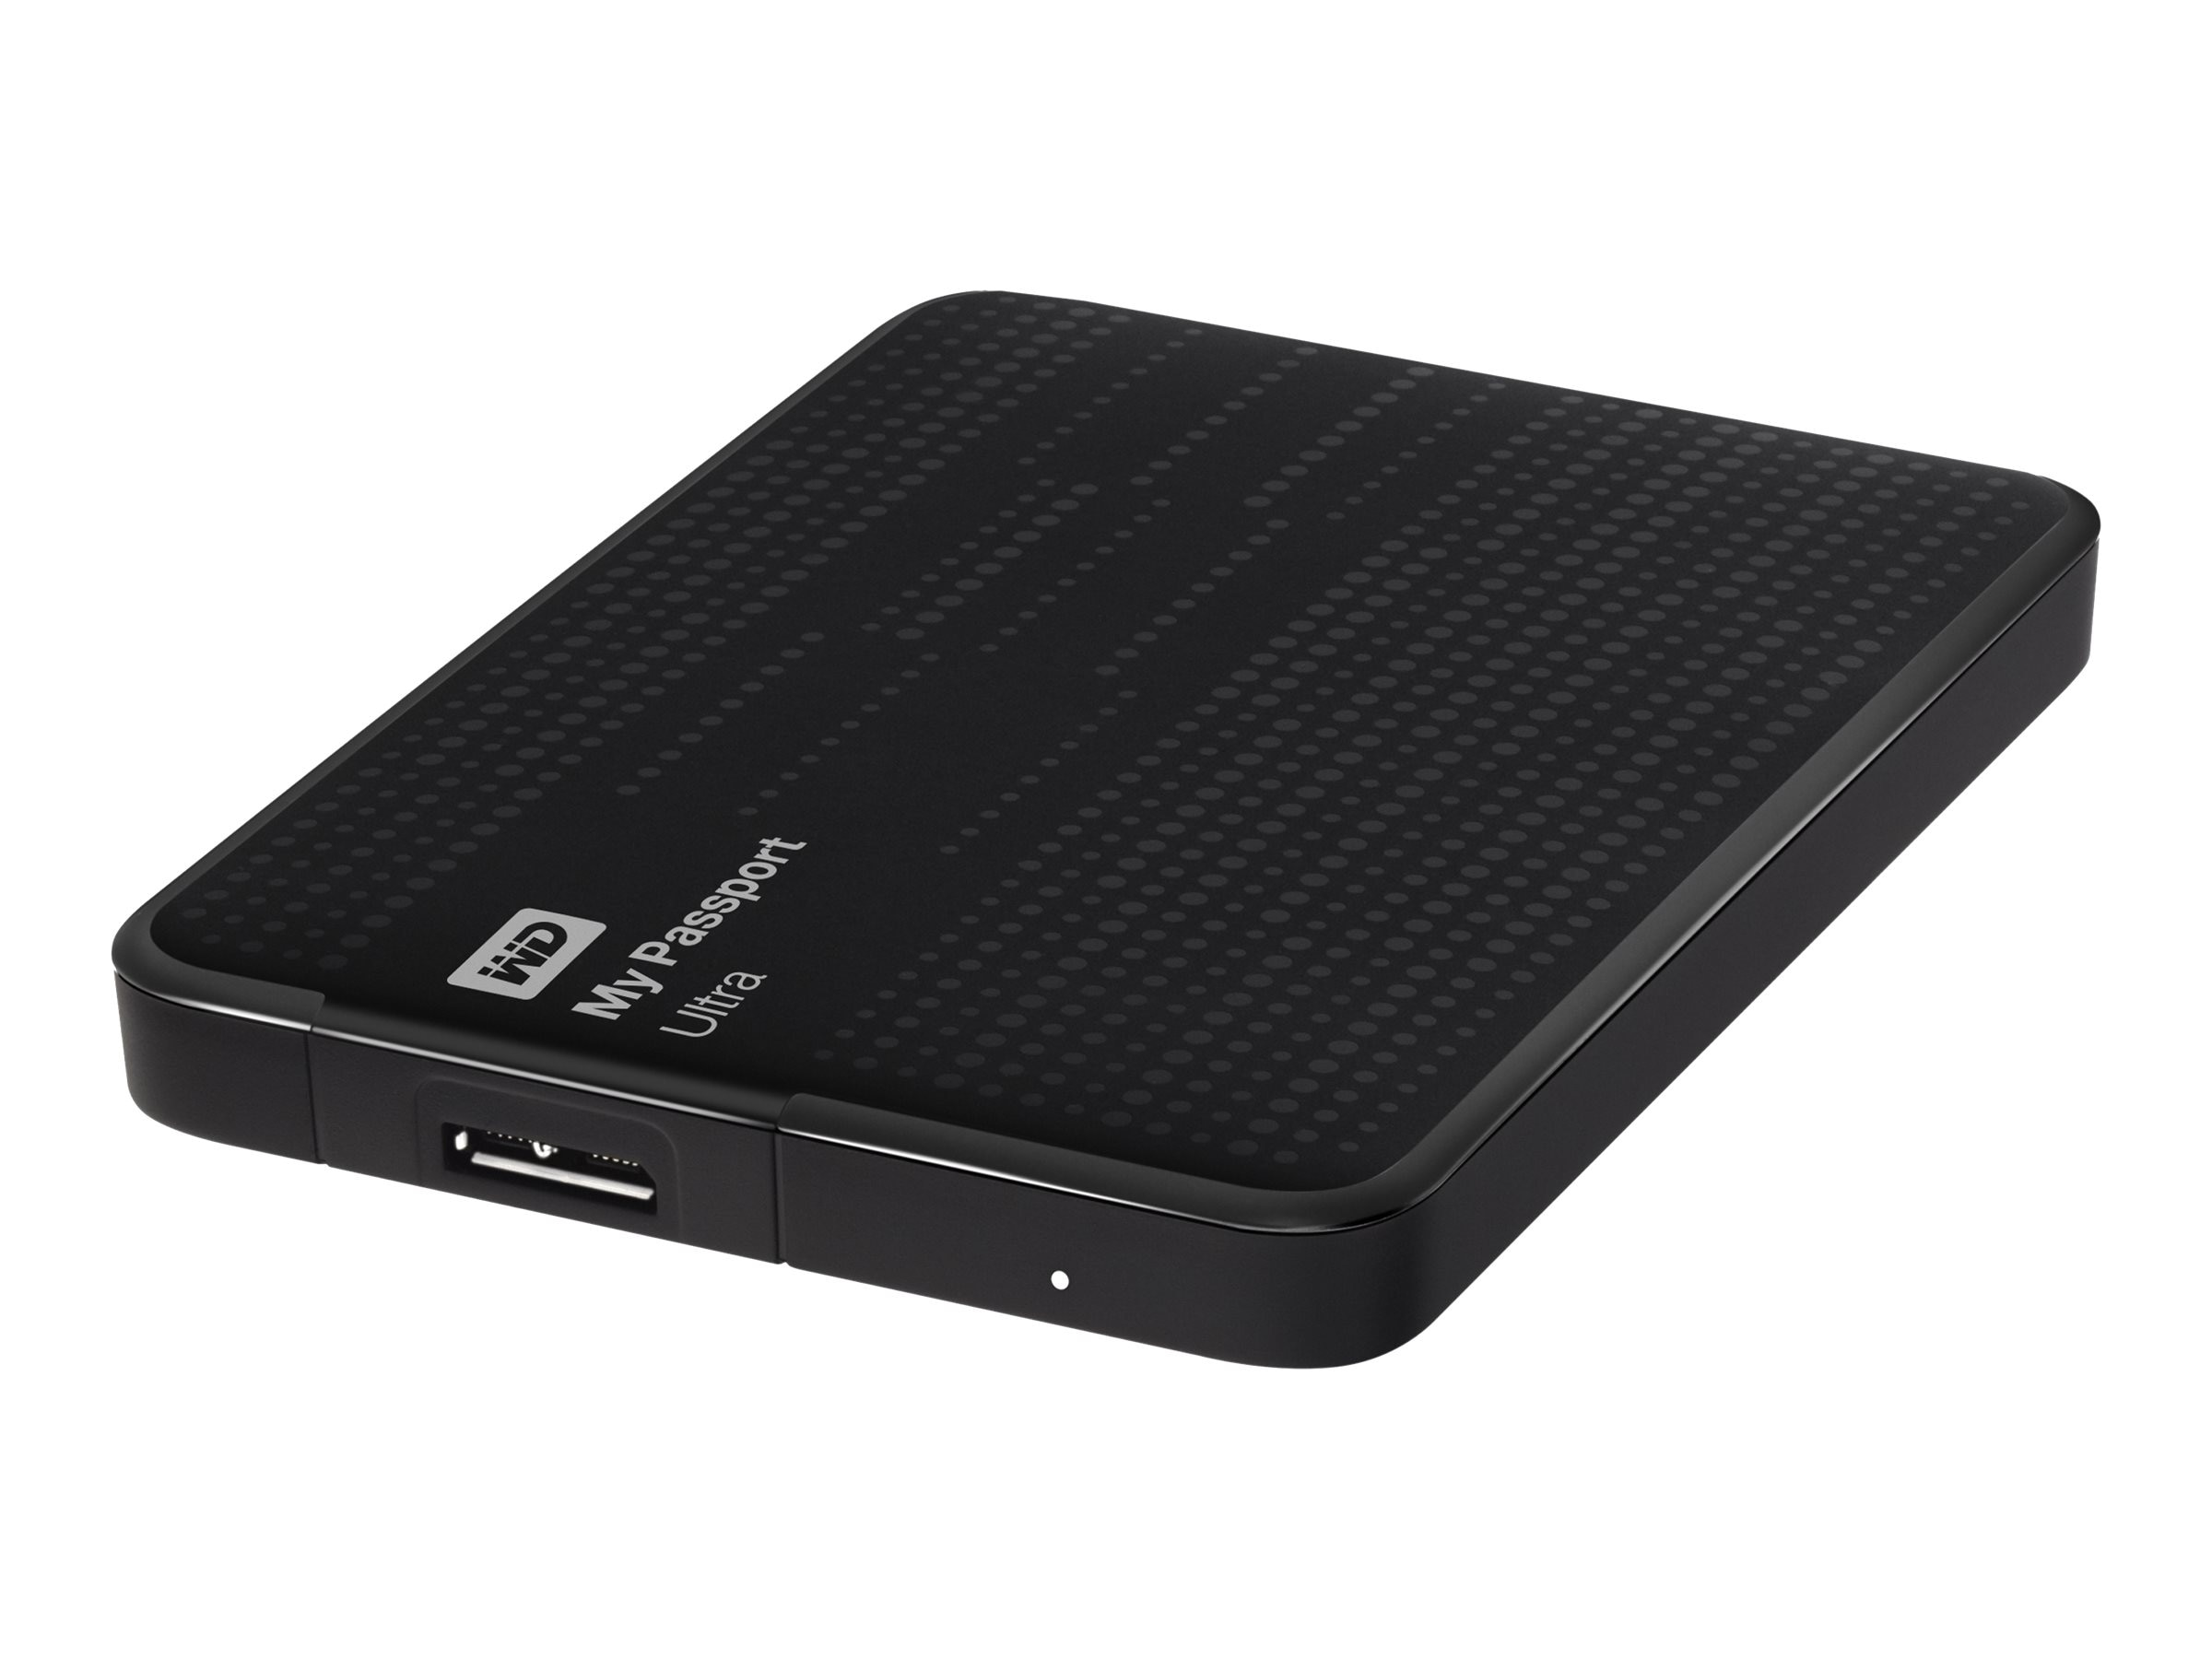 WD 2TB My Passport Ultra USB 3.0 Portable Hard Drive - Black, WDBMWV0020BBK-NESN